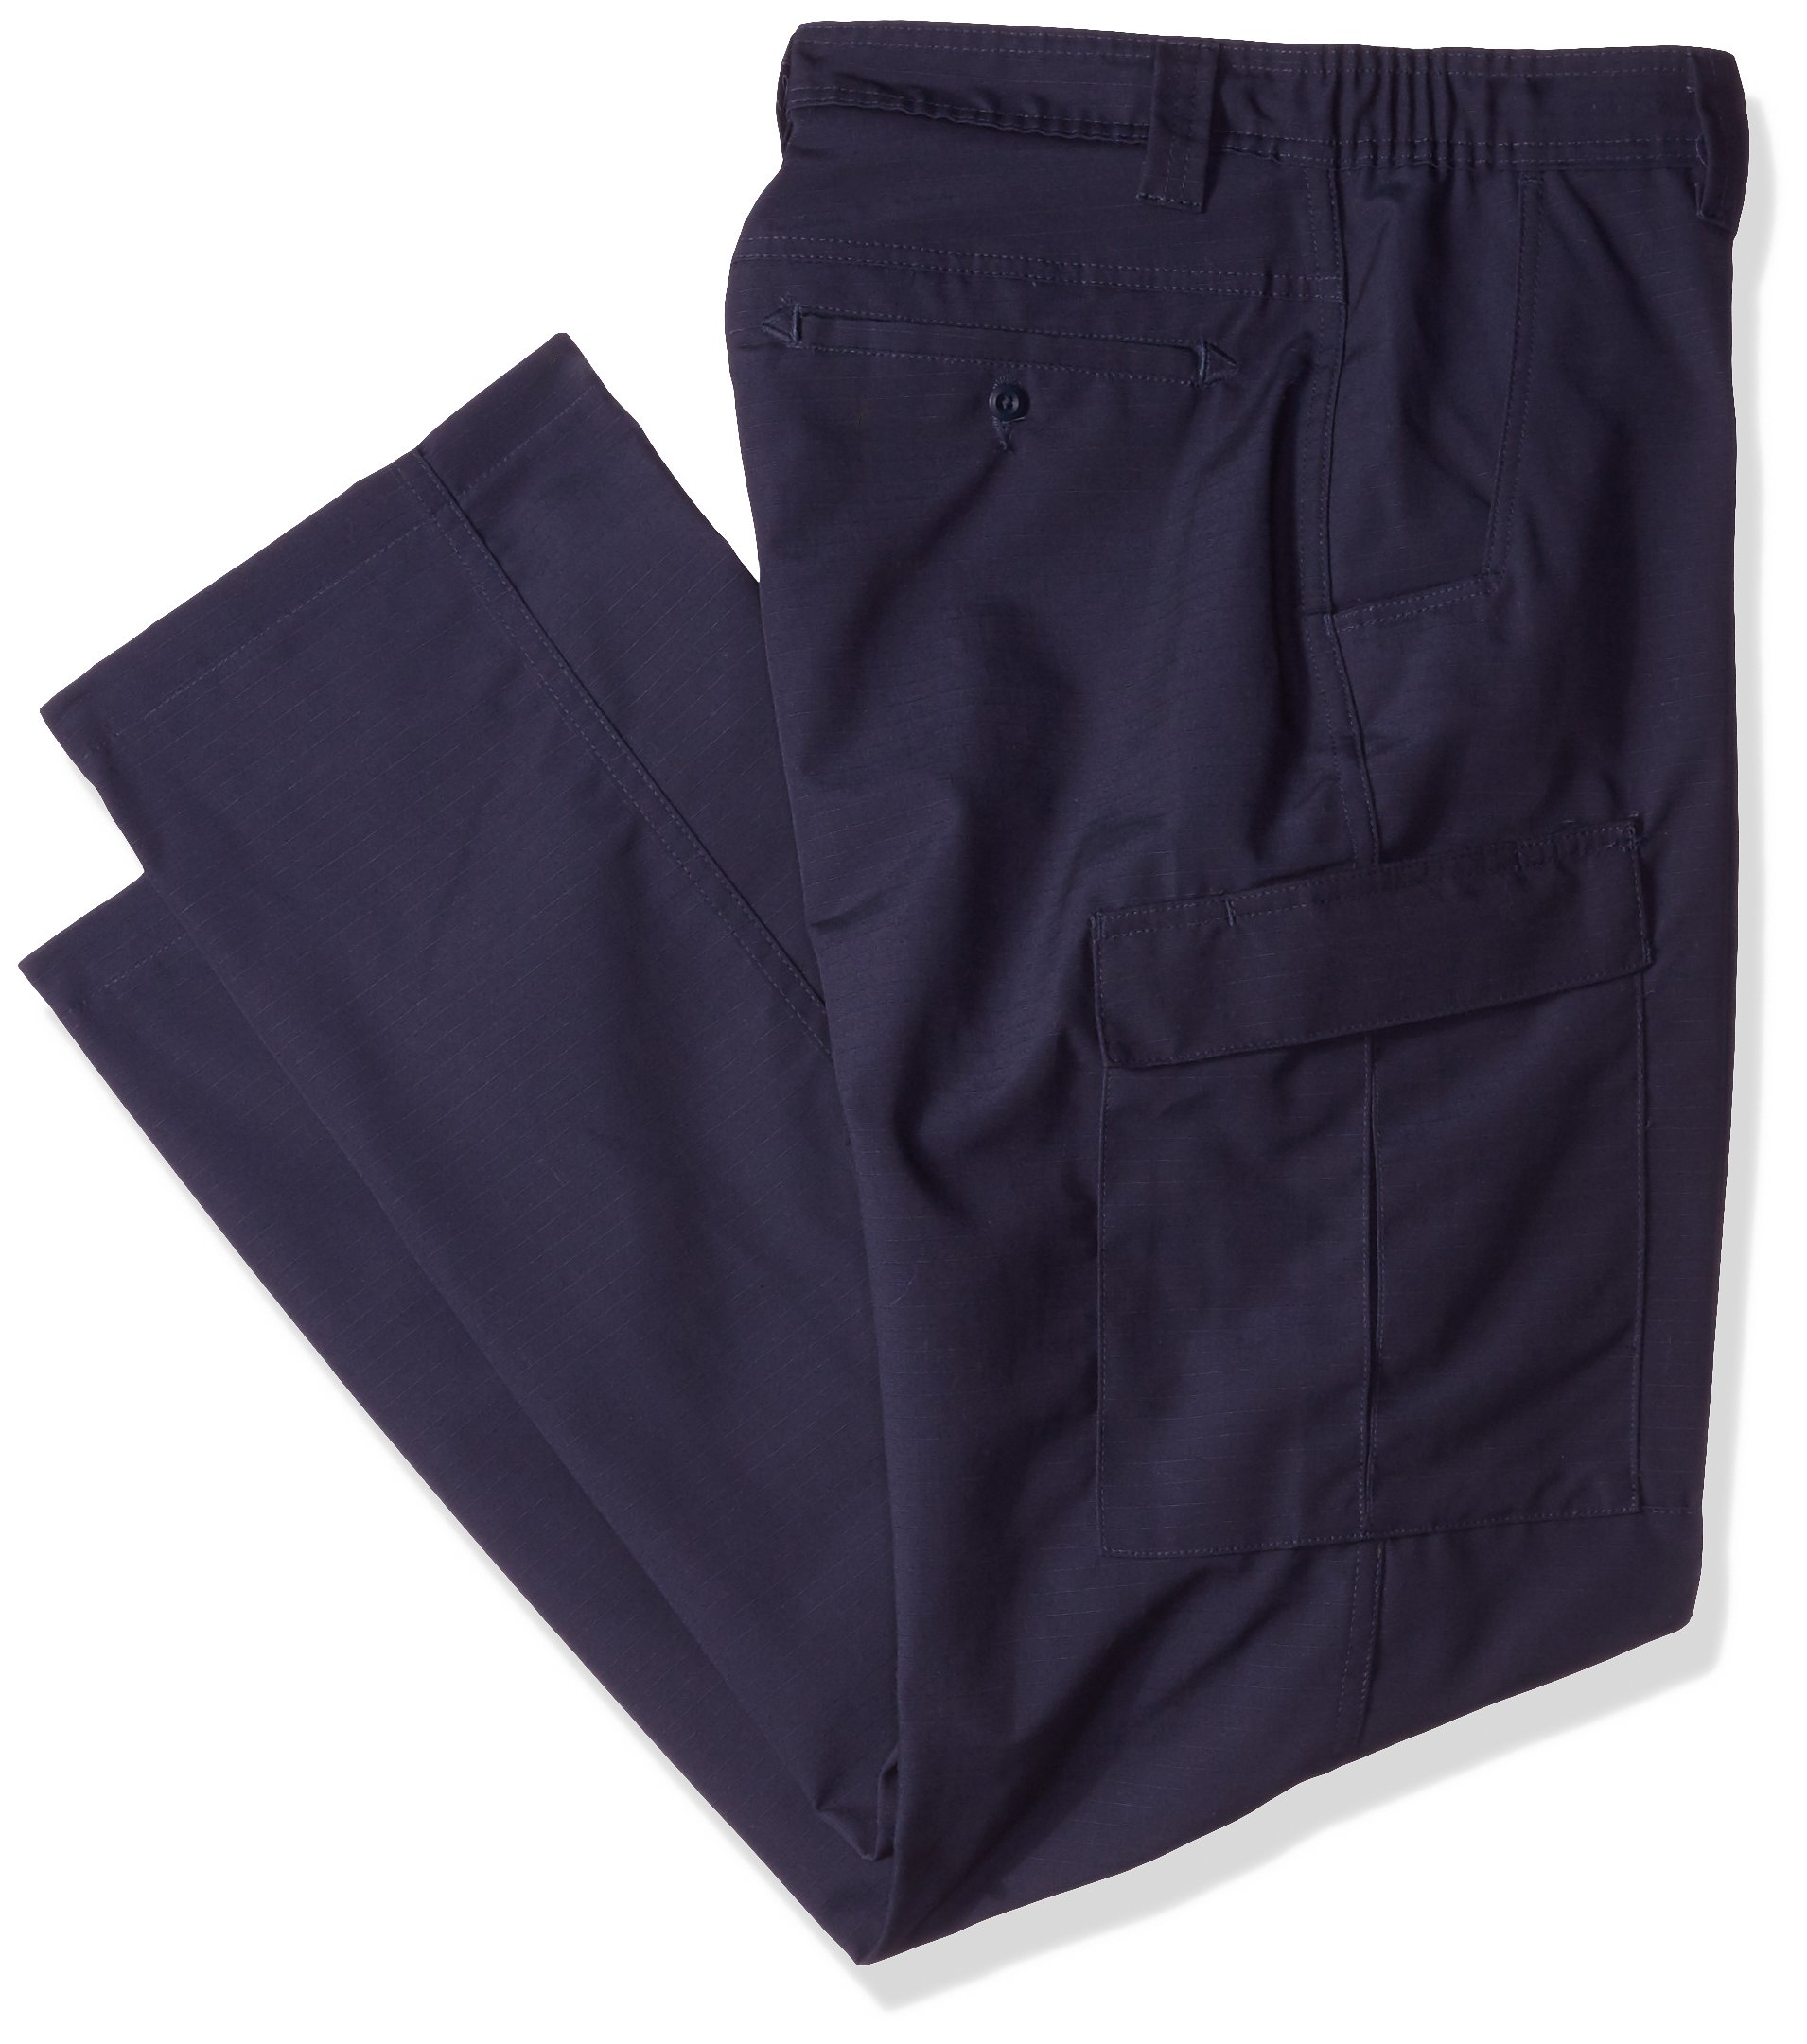 Tru-Spec 24-7 1024010 Cargo Pocket Pants